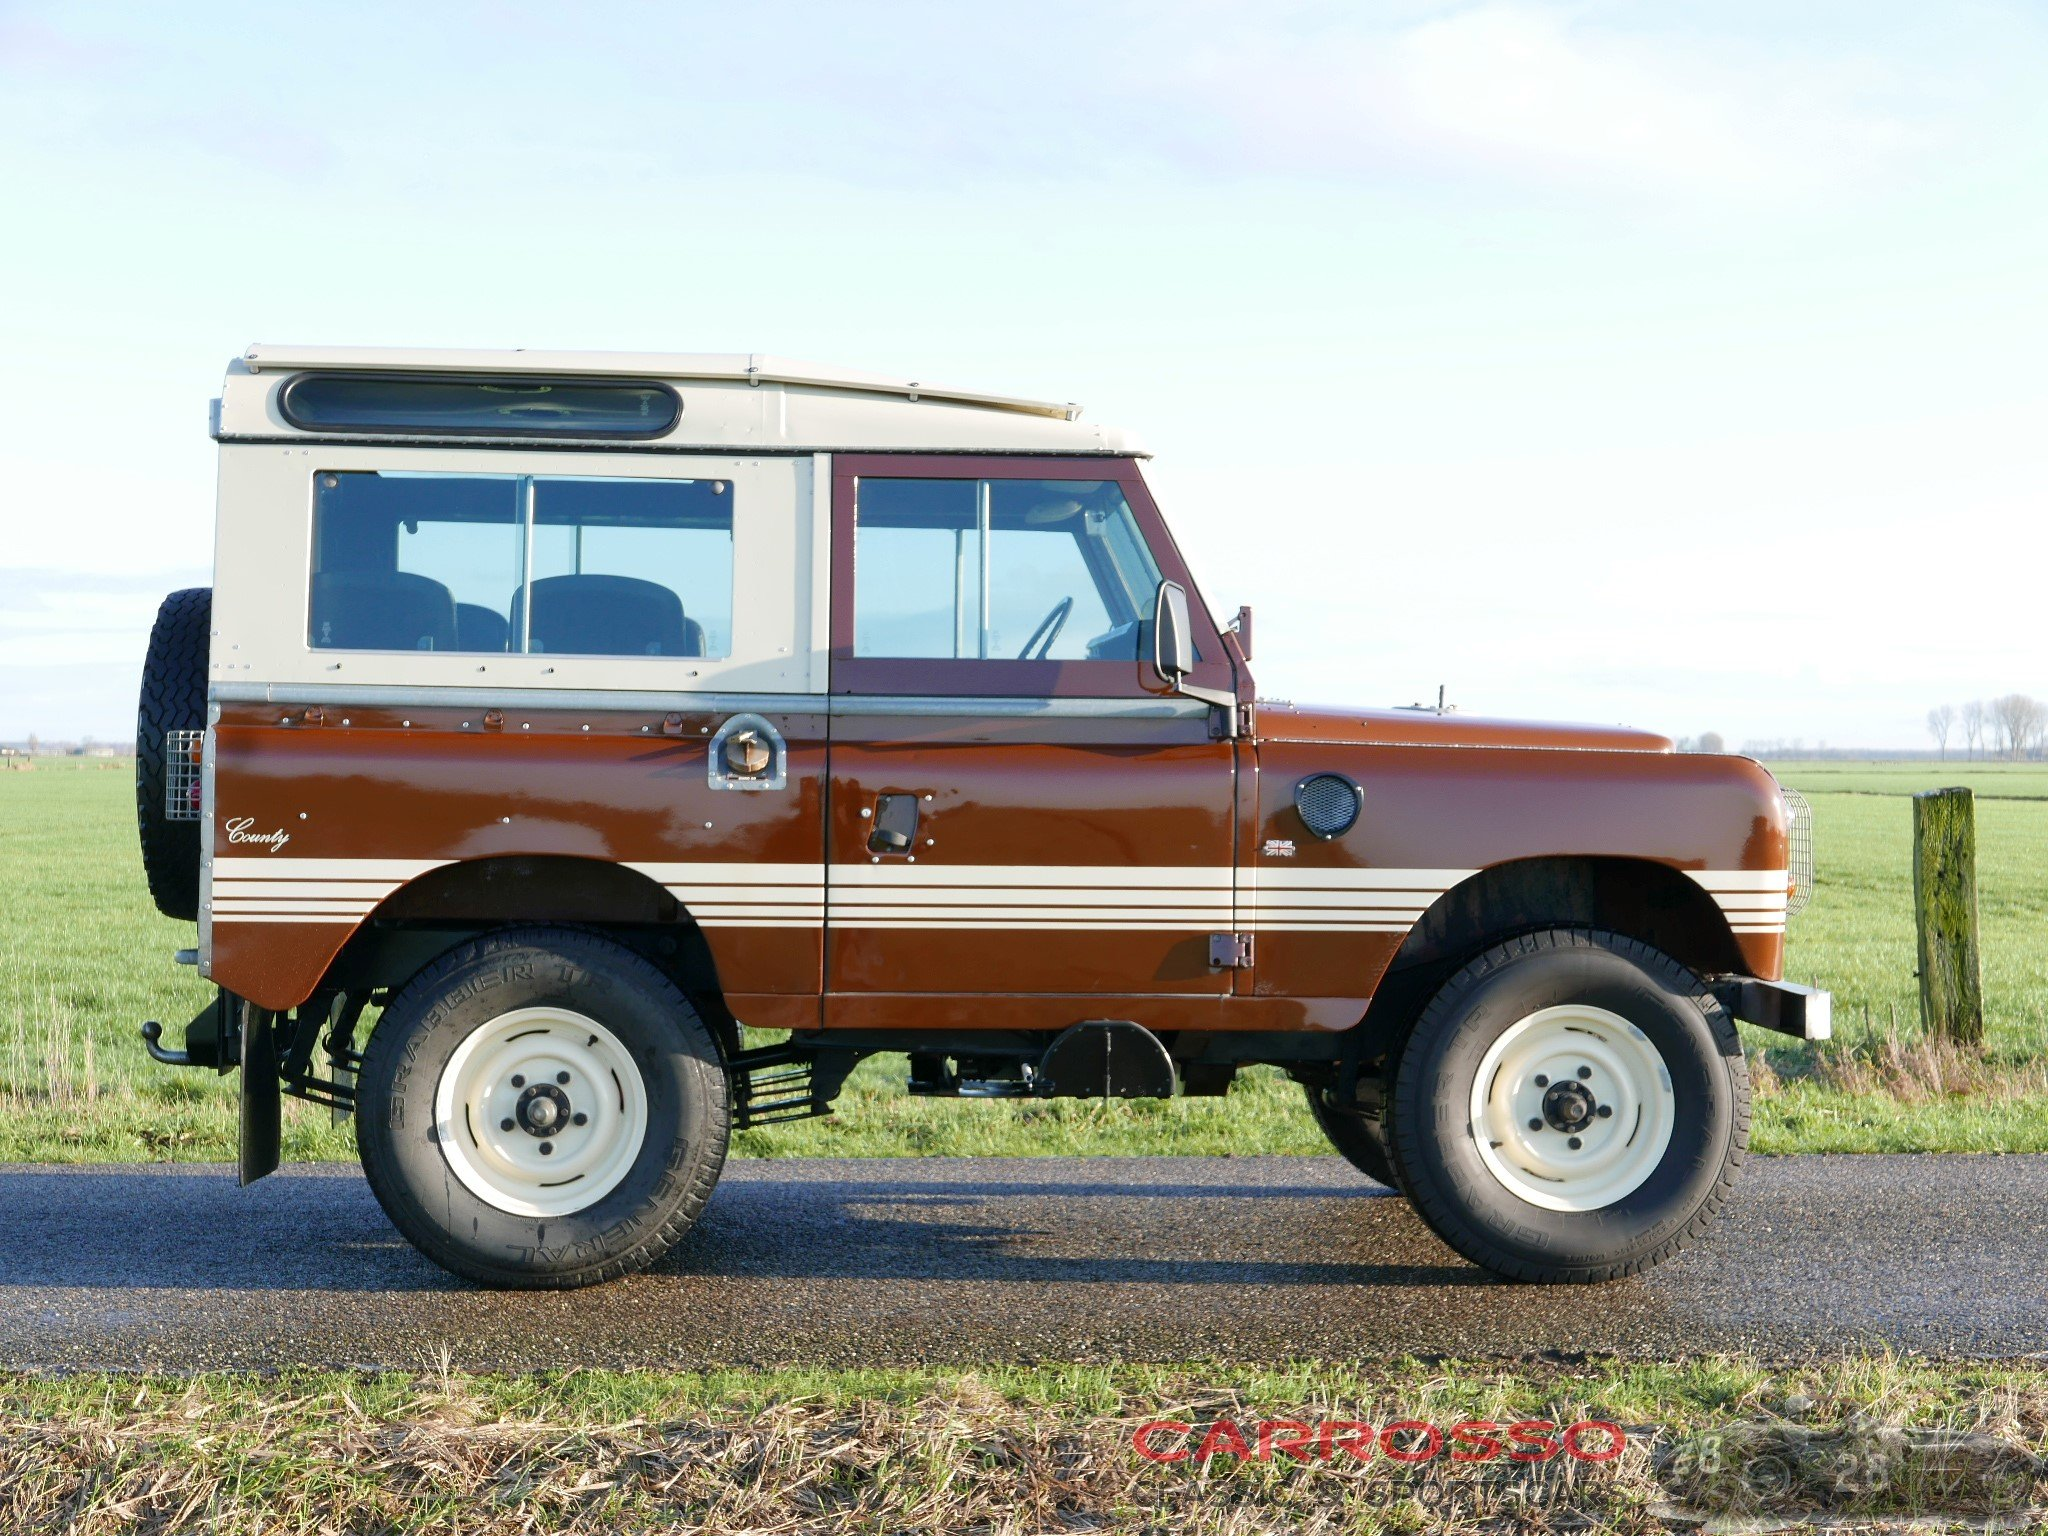 8Land Rover 88 series 3 (17)